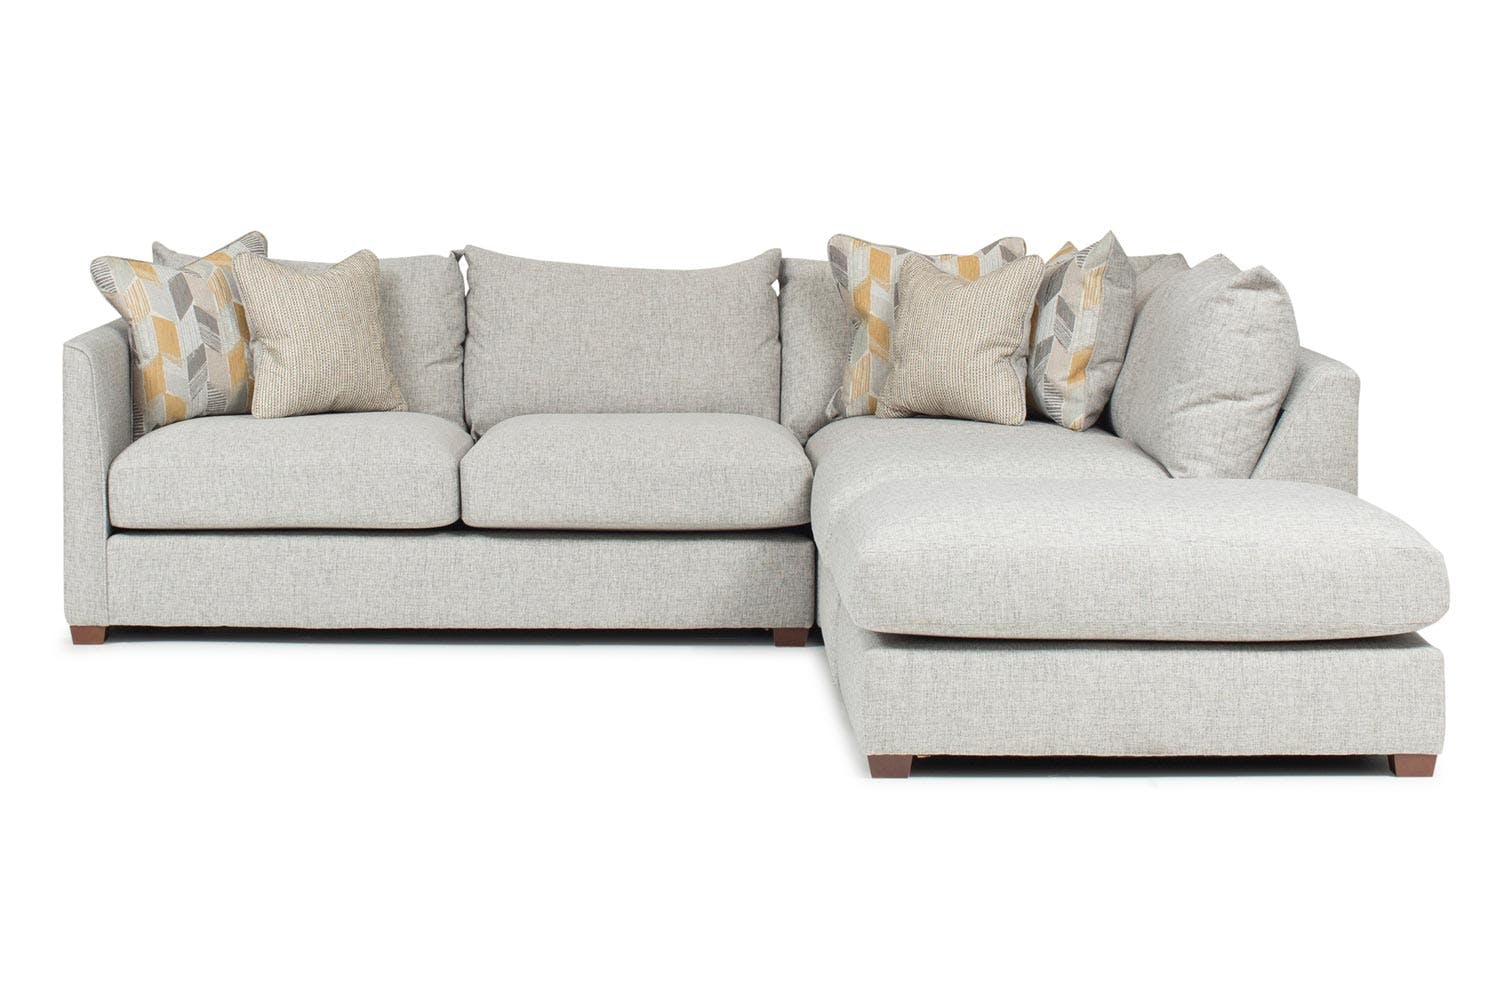 Faye corner sofa with chaise harvey norman ireland for Chaise corner sofas uk